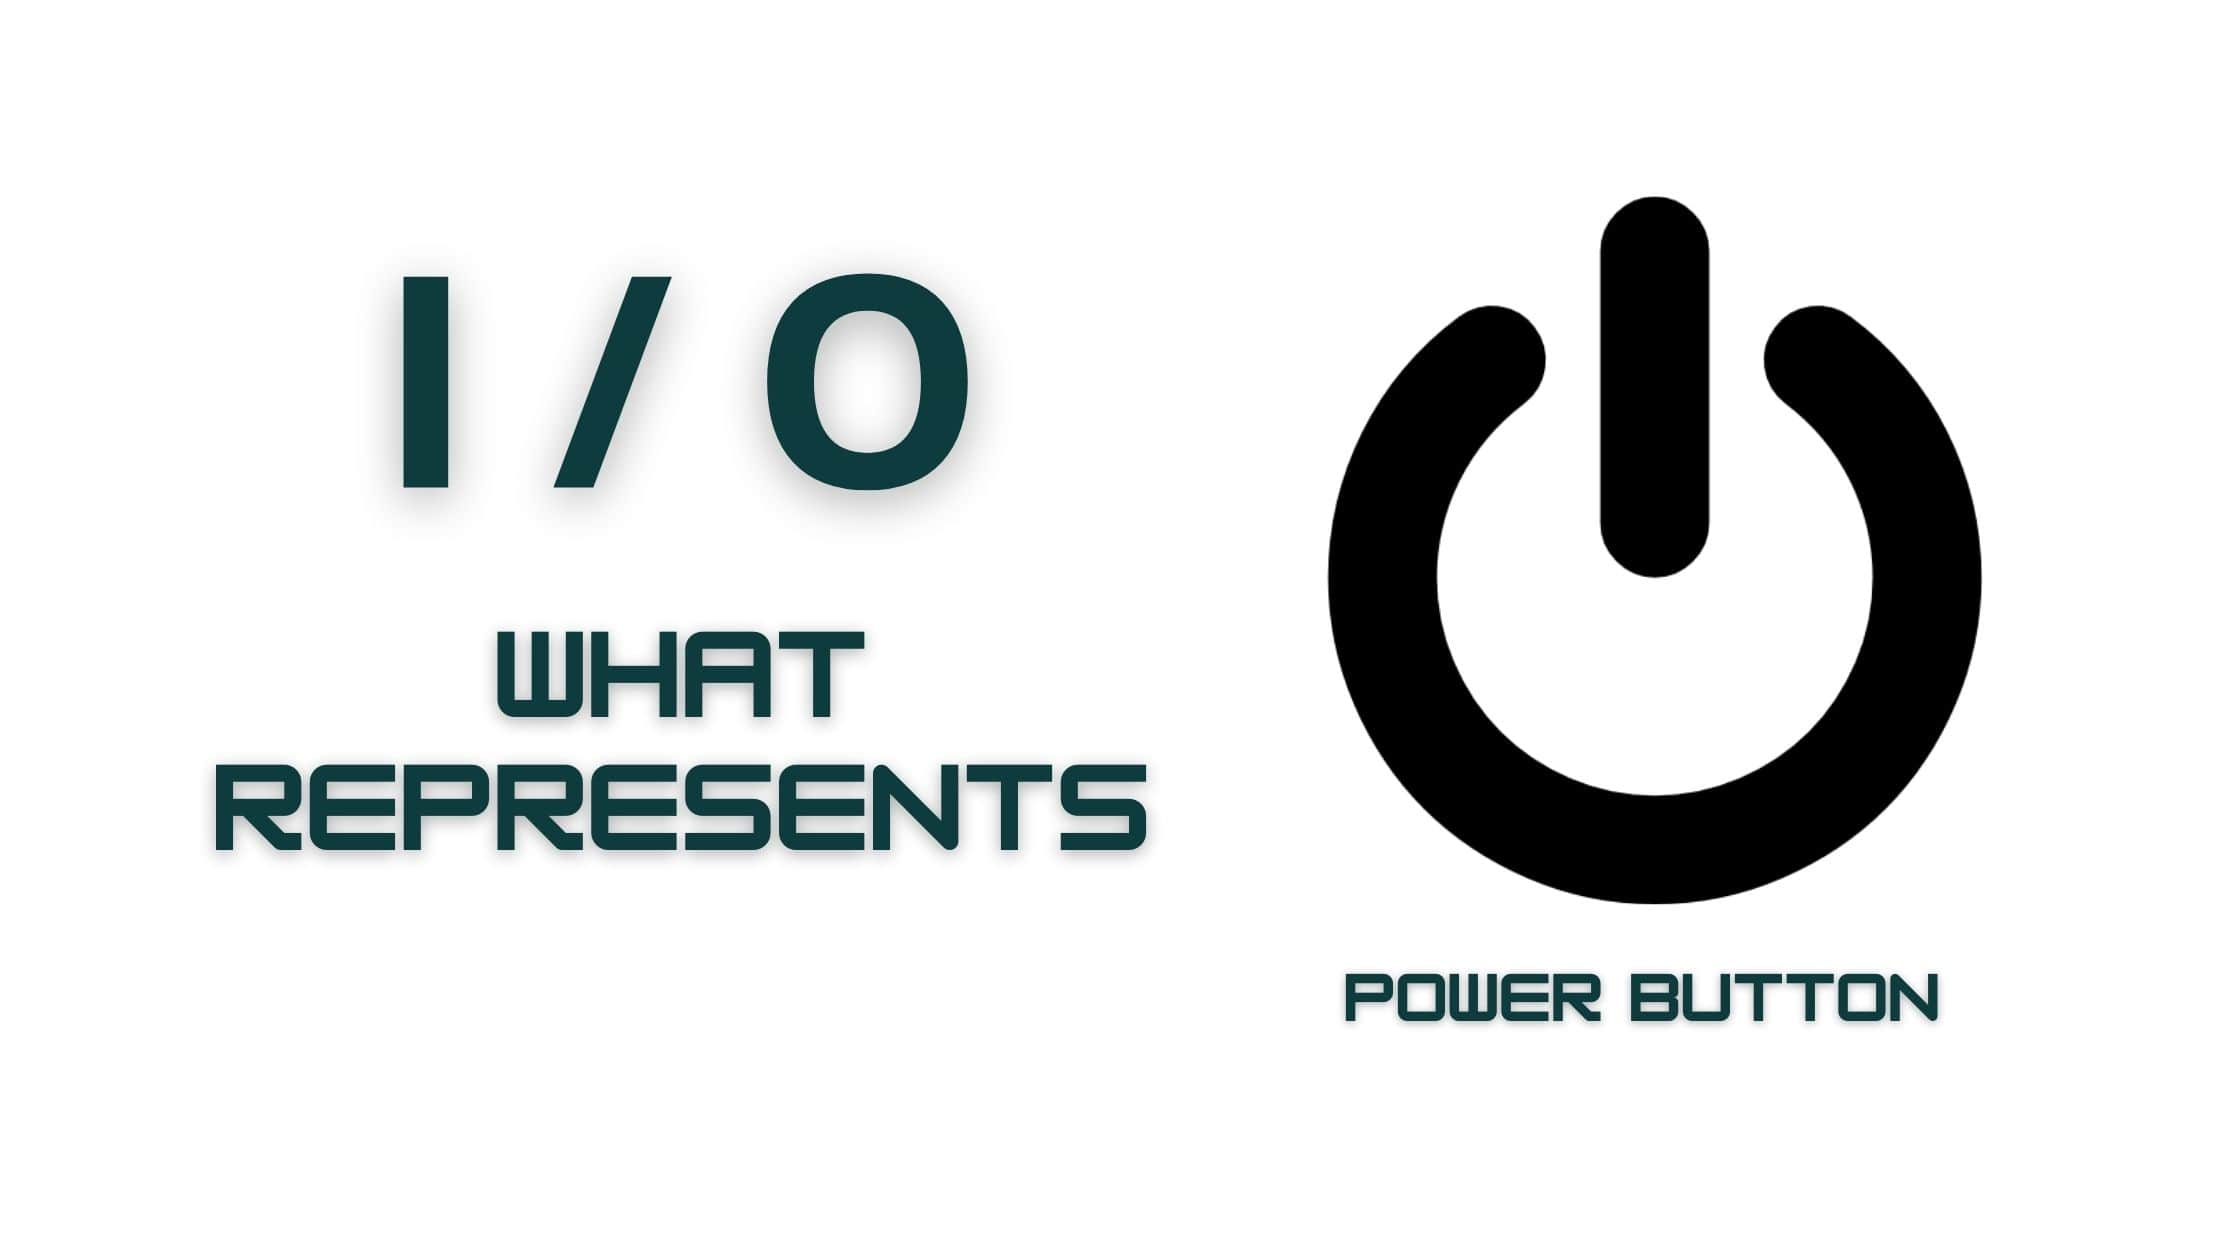 Power Button Symbol - What Does it Represents